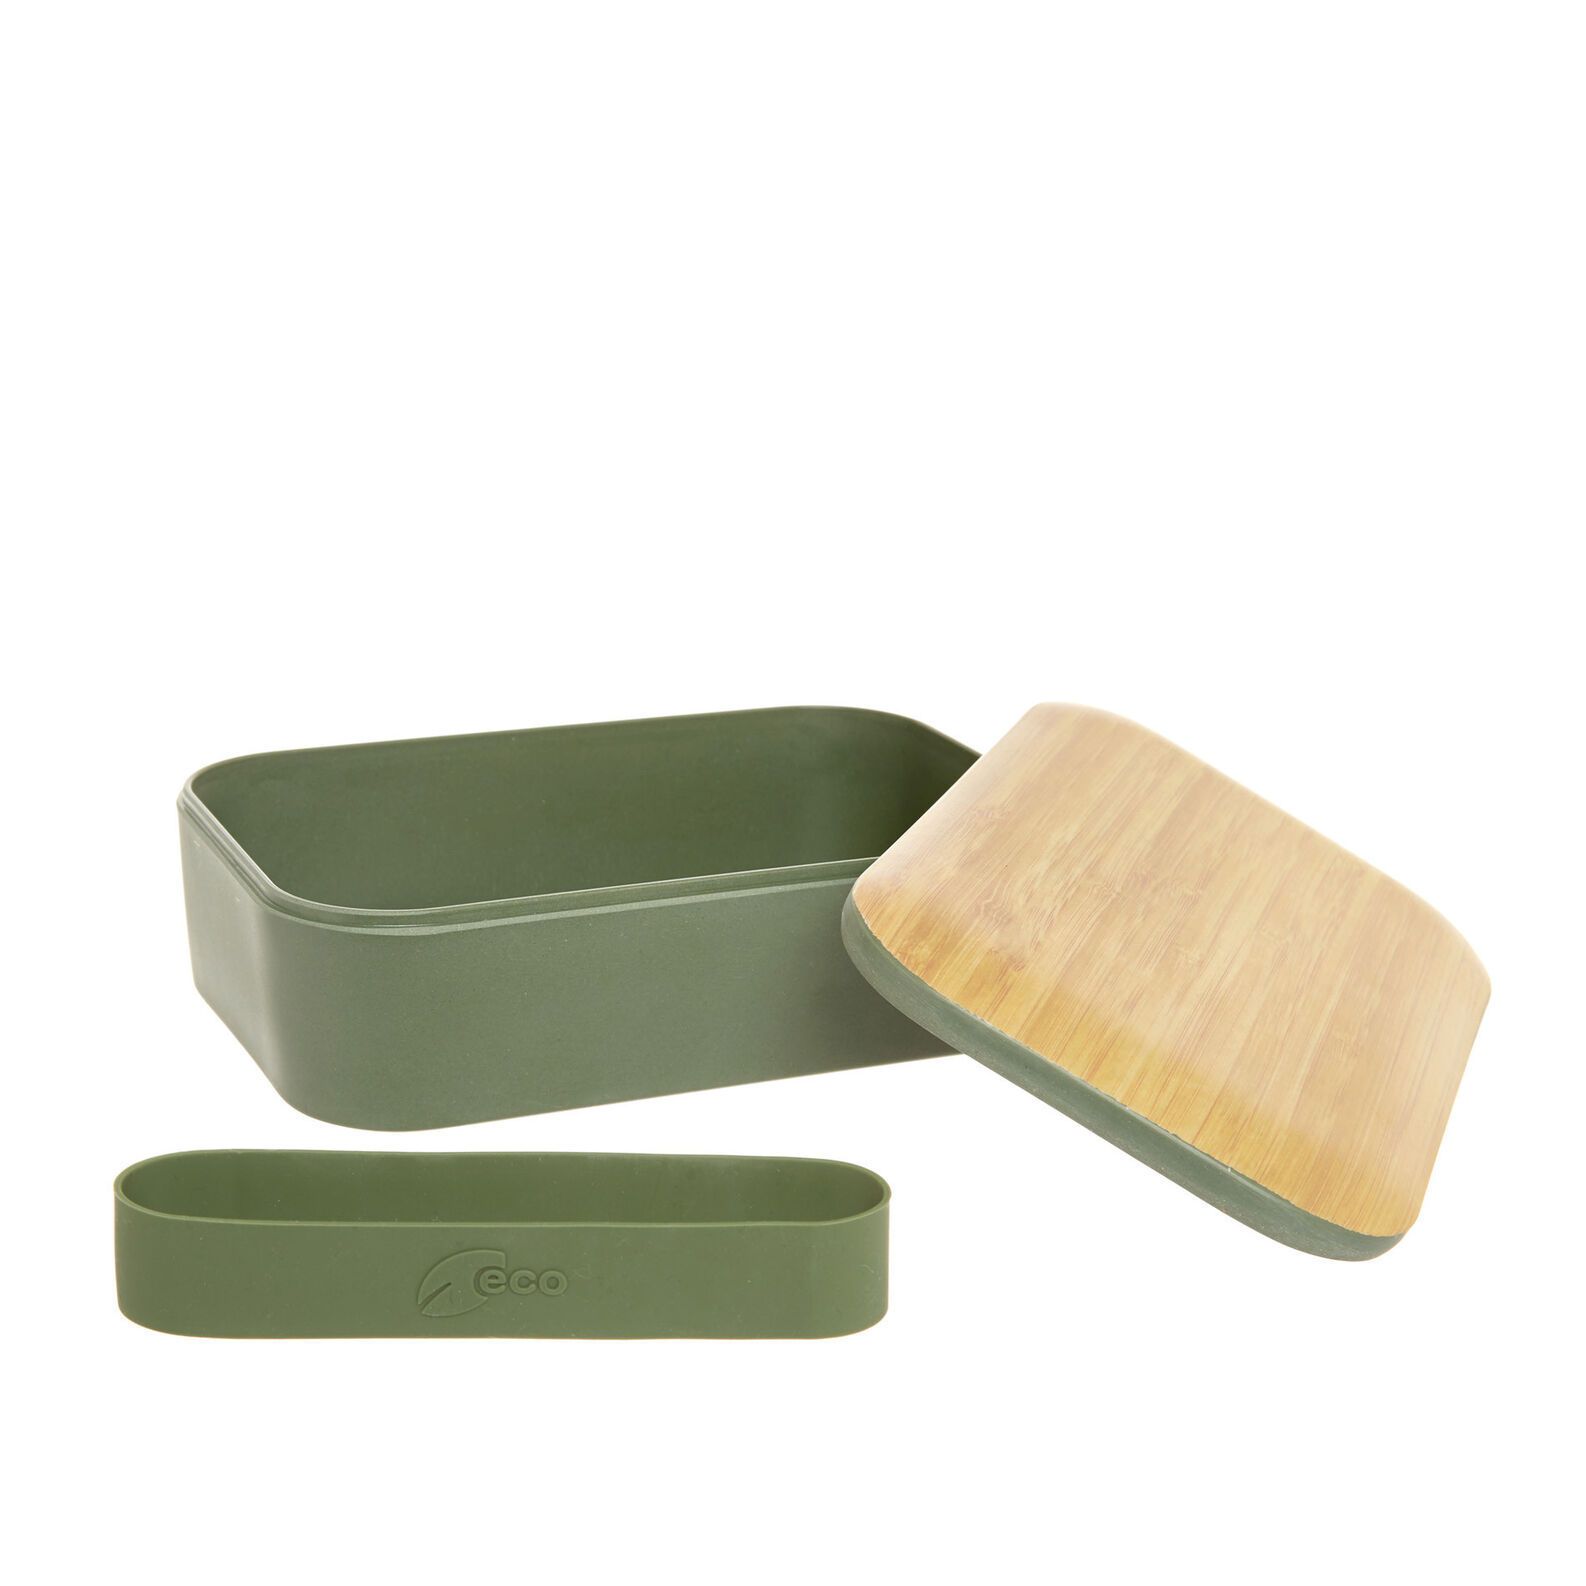 Lunch box in wood and bamboo fibre